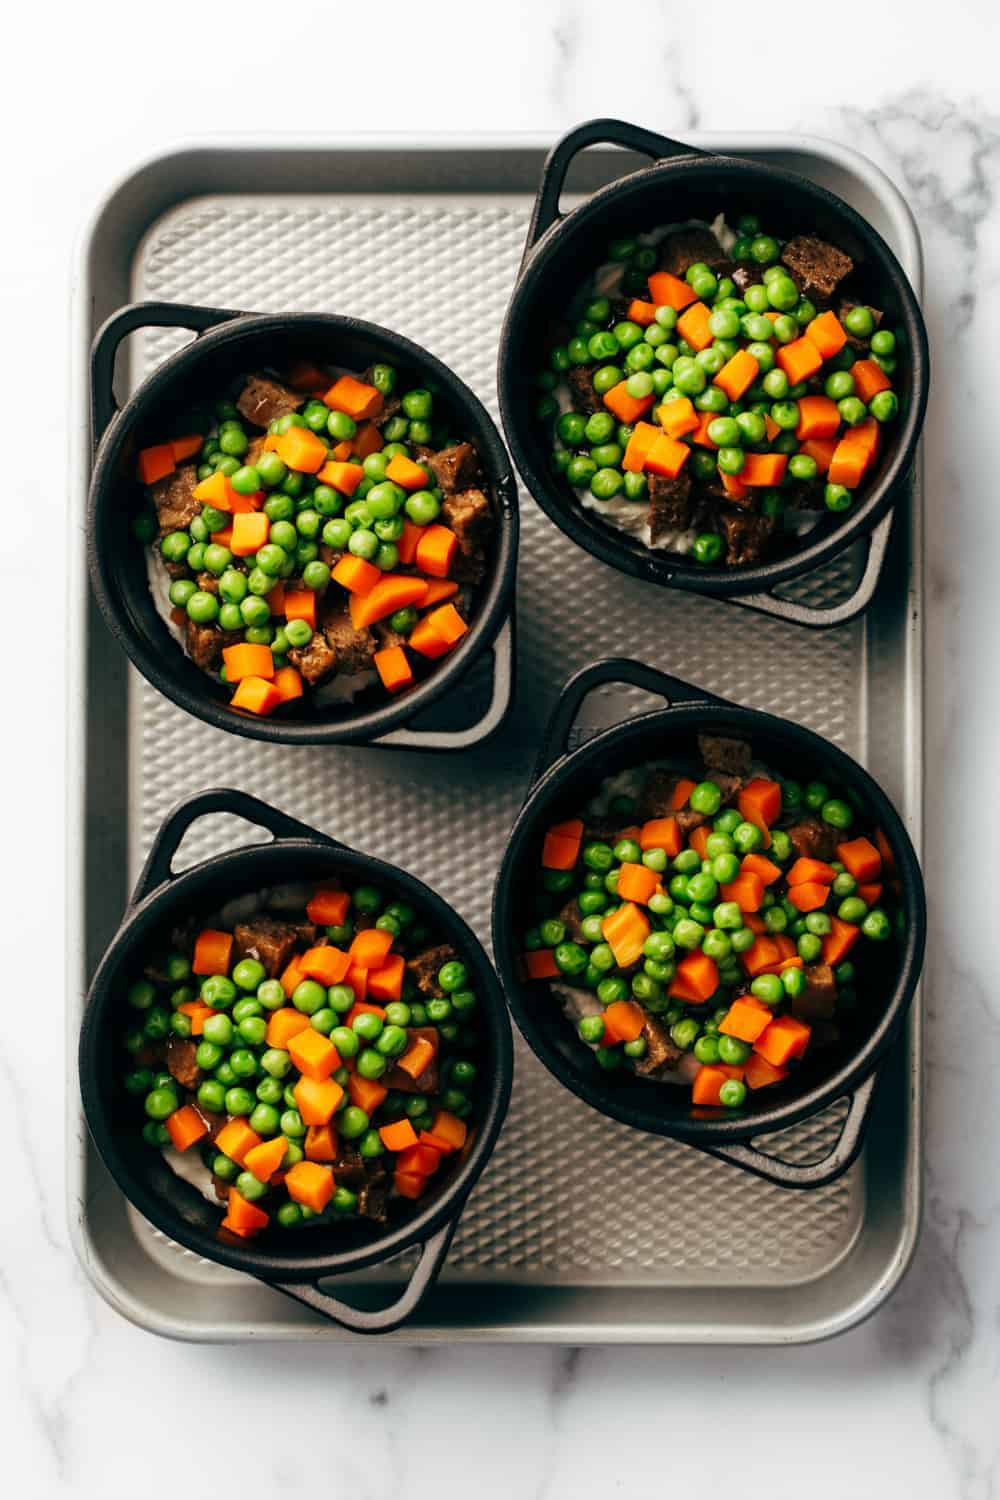 Frozen peas and carrots add some veggies to round out Quick and Easy Shepherd's Pie